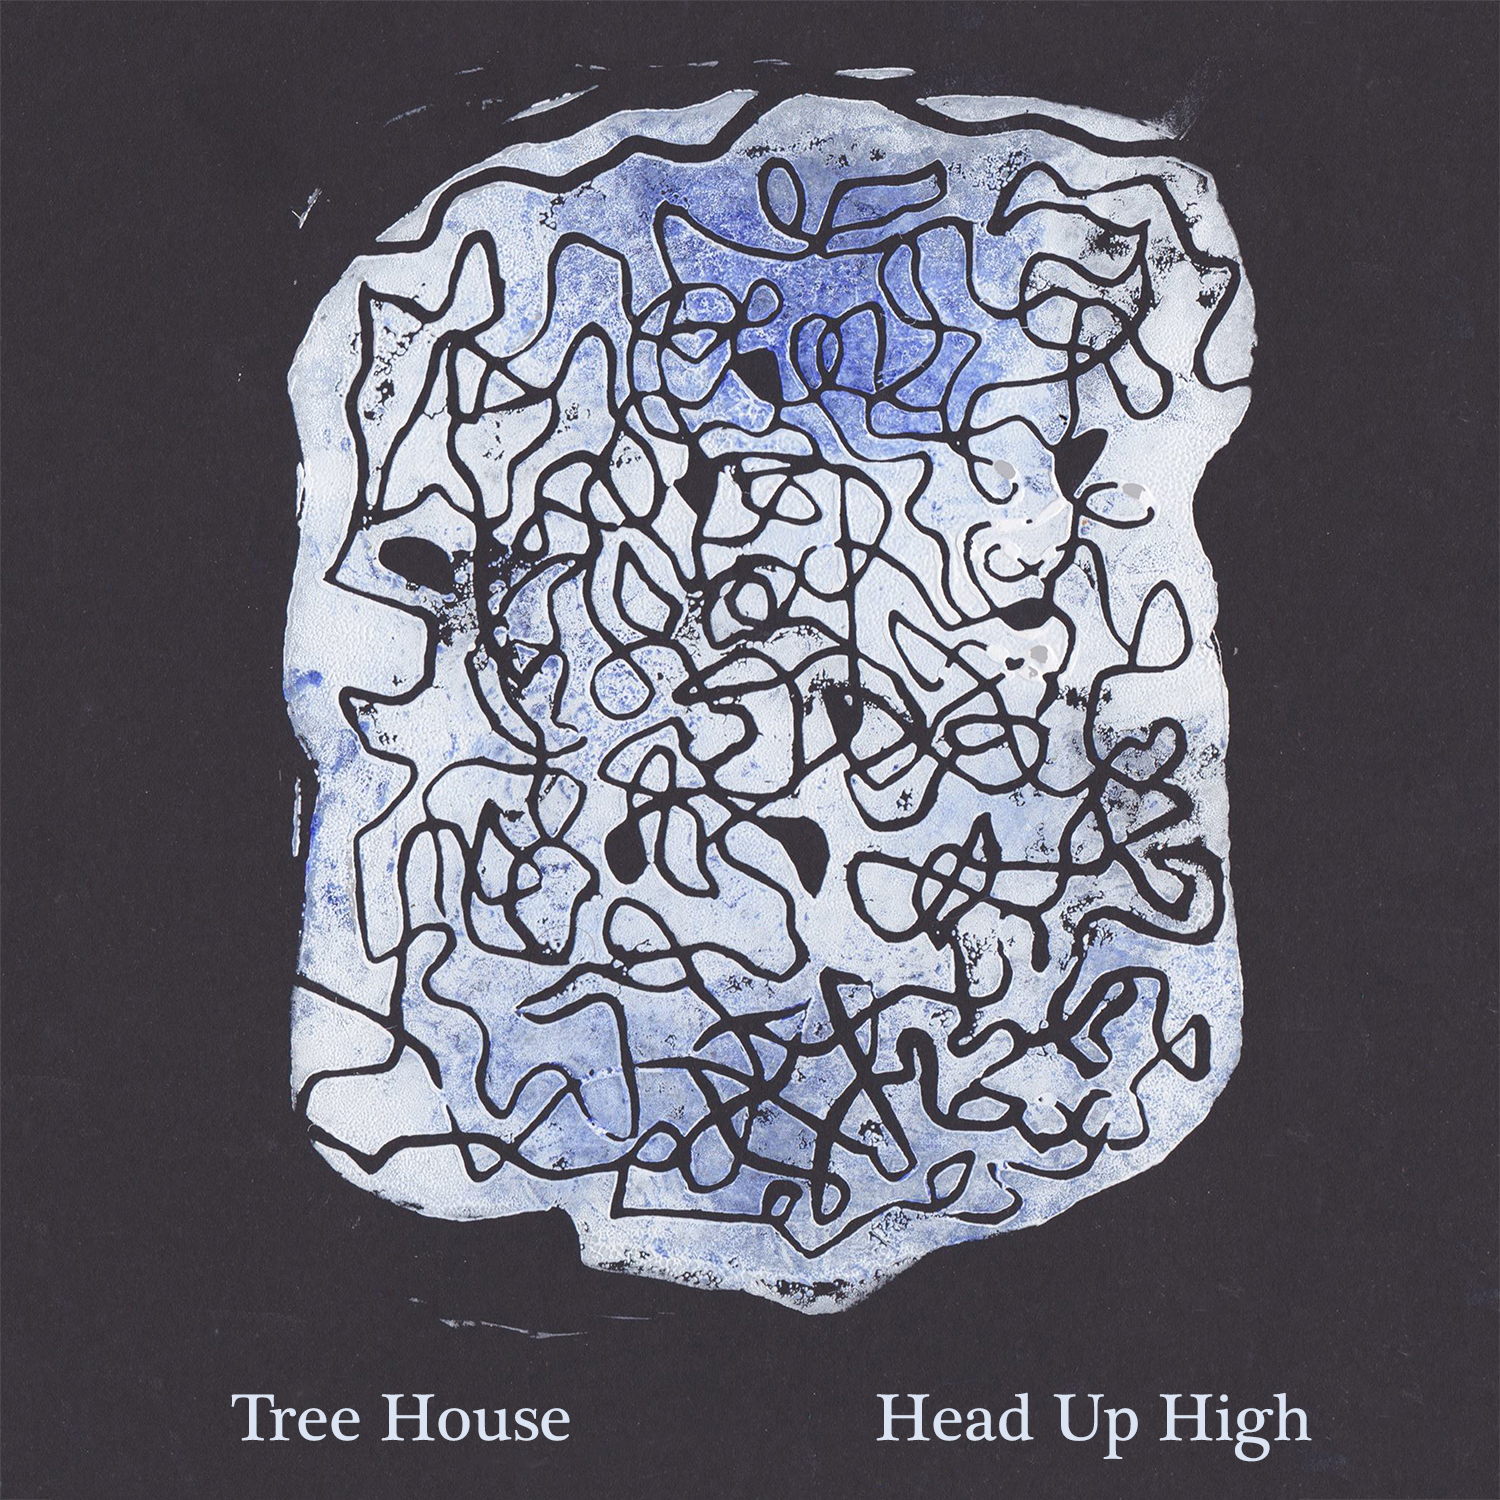 Head Up High Artwork 300 dpi 1500.jpg